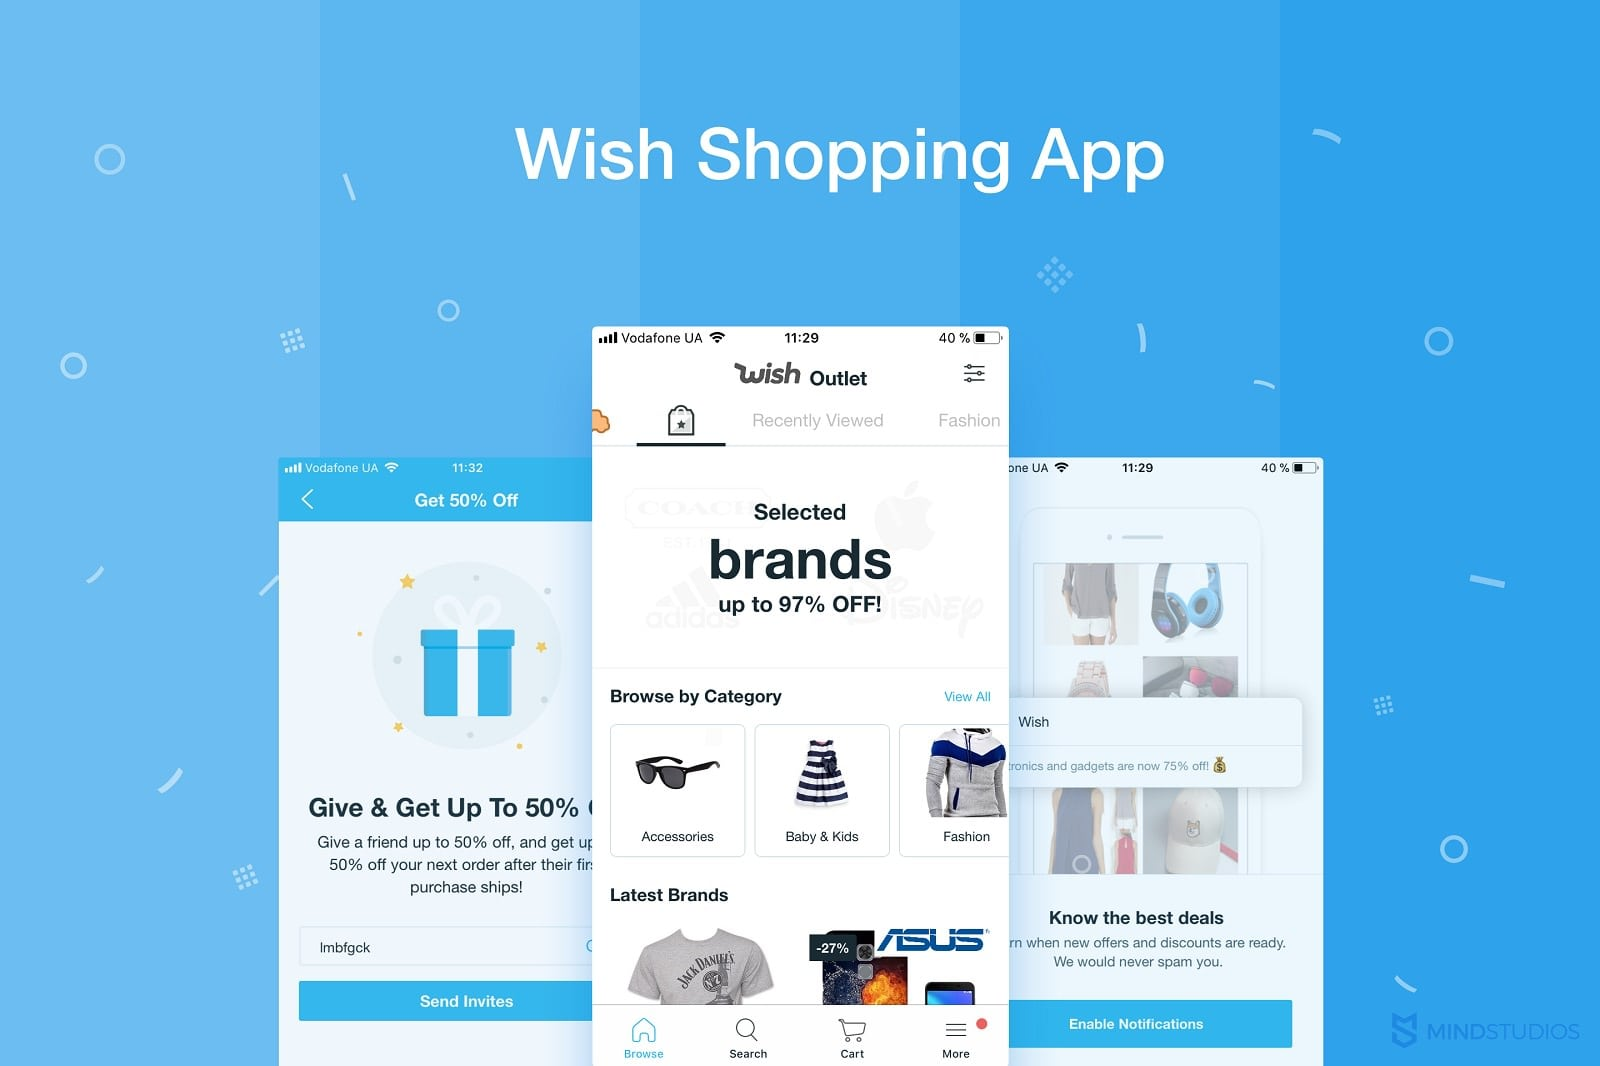 The history and business model of the Wish app